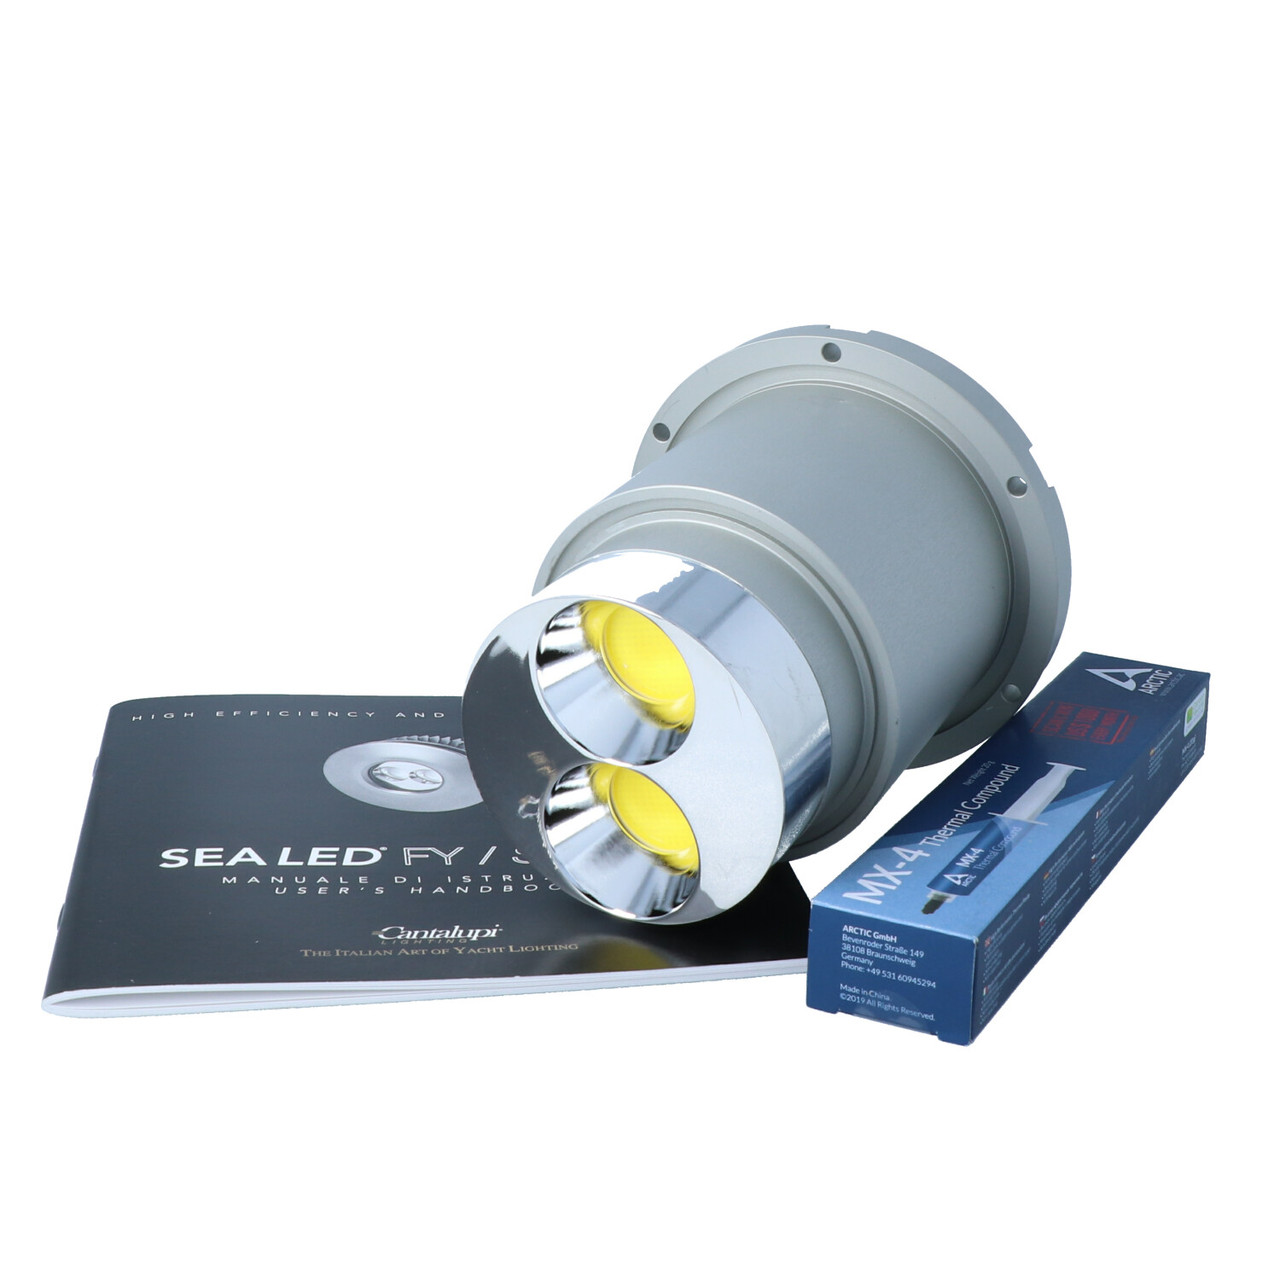 SEA LED (CORE ONLY) FY9 CANTALUPI UNDERWATER INSERT